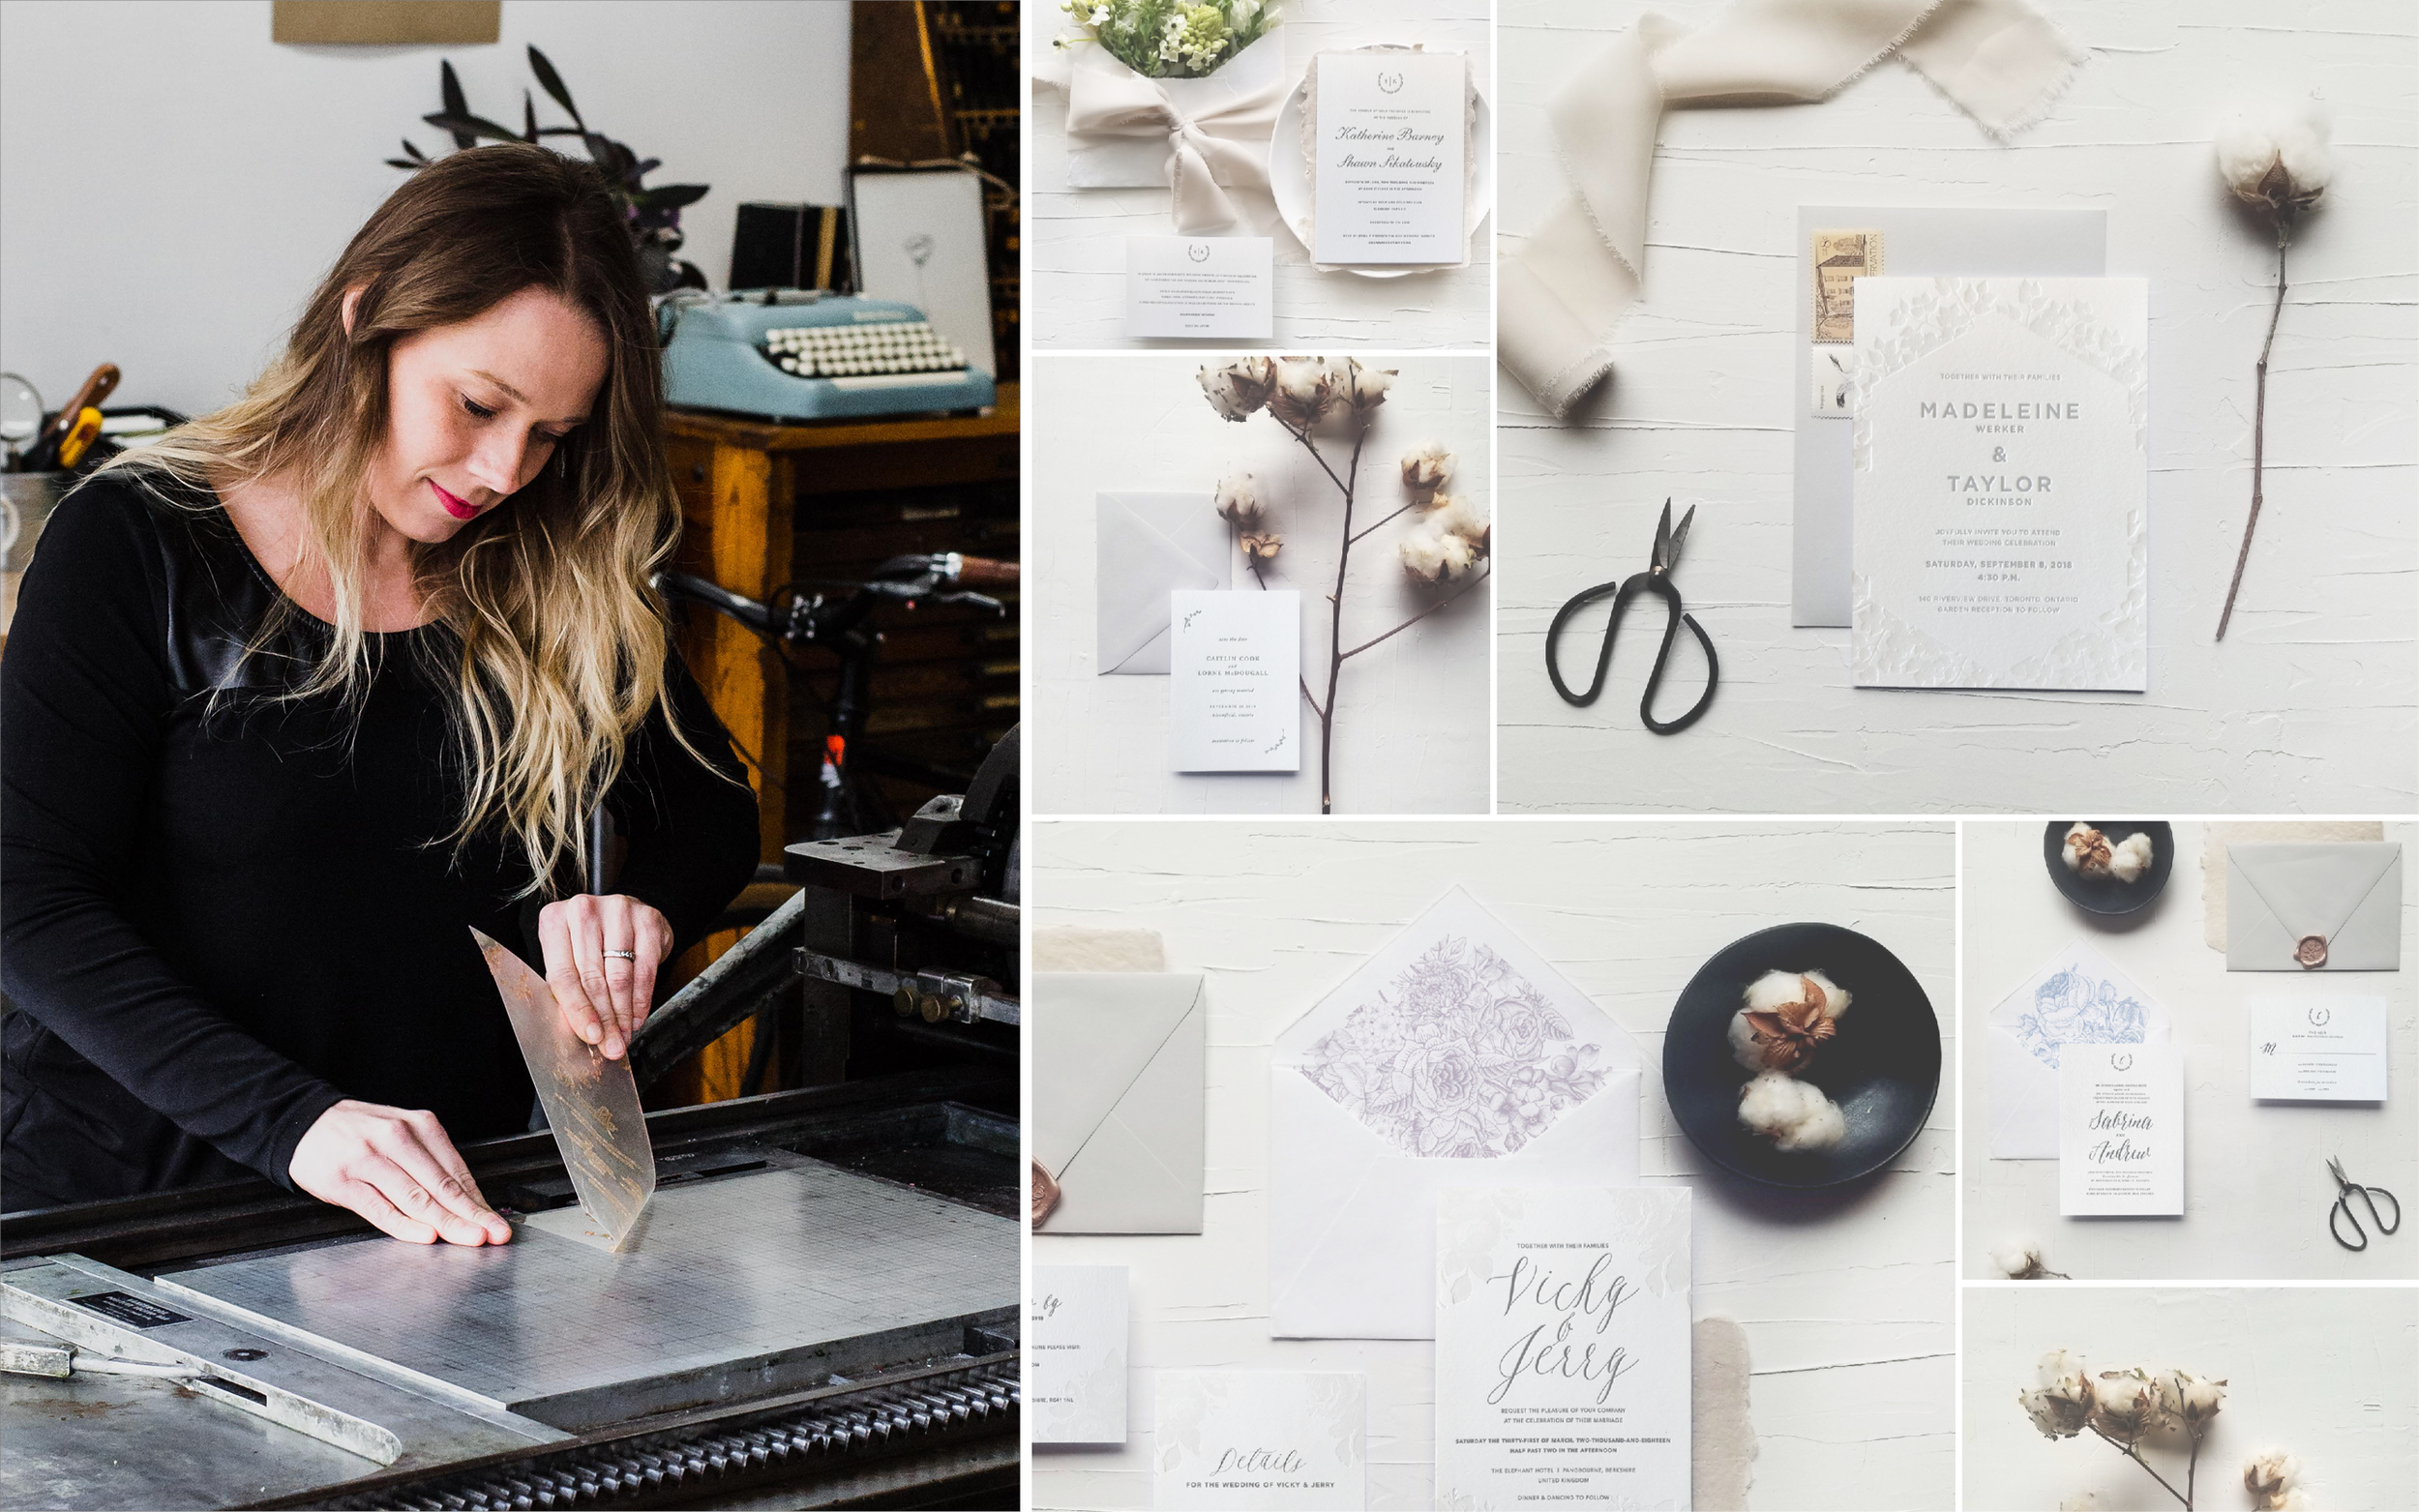 Working in my letterpress studio / Some custom wedding stationery designs